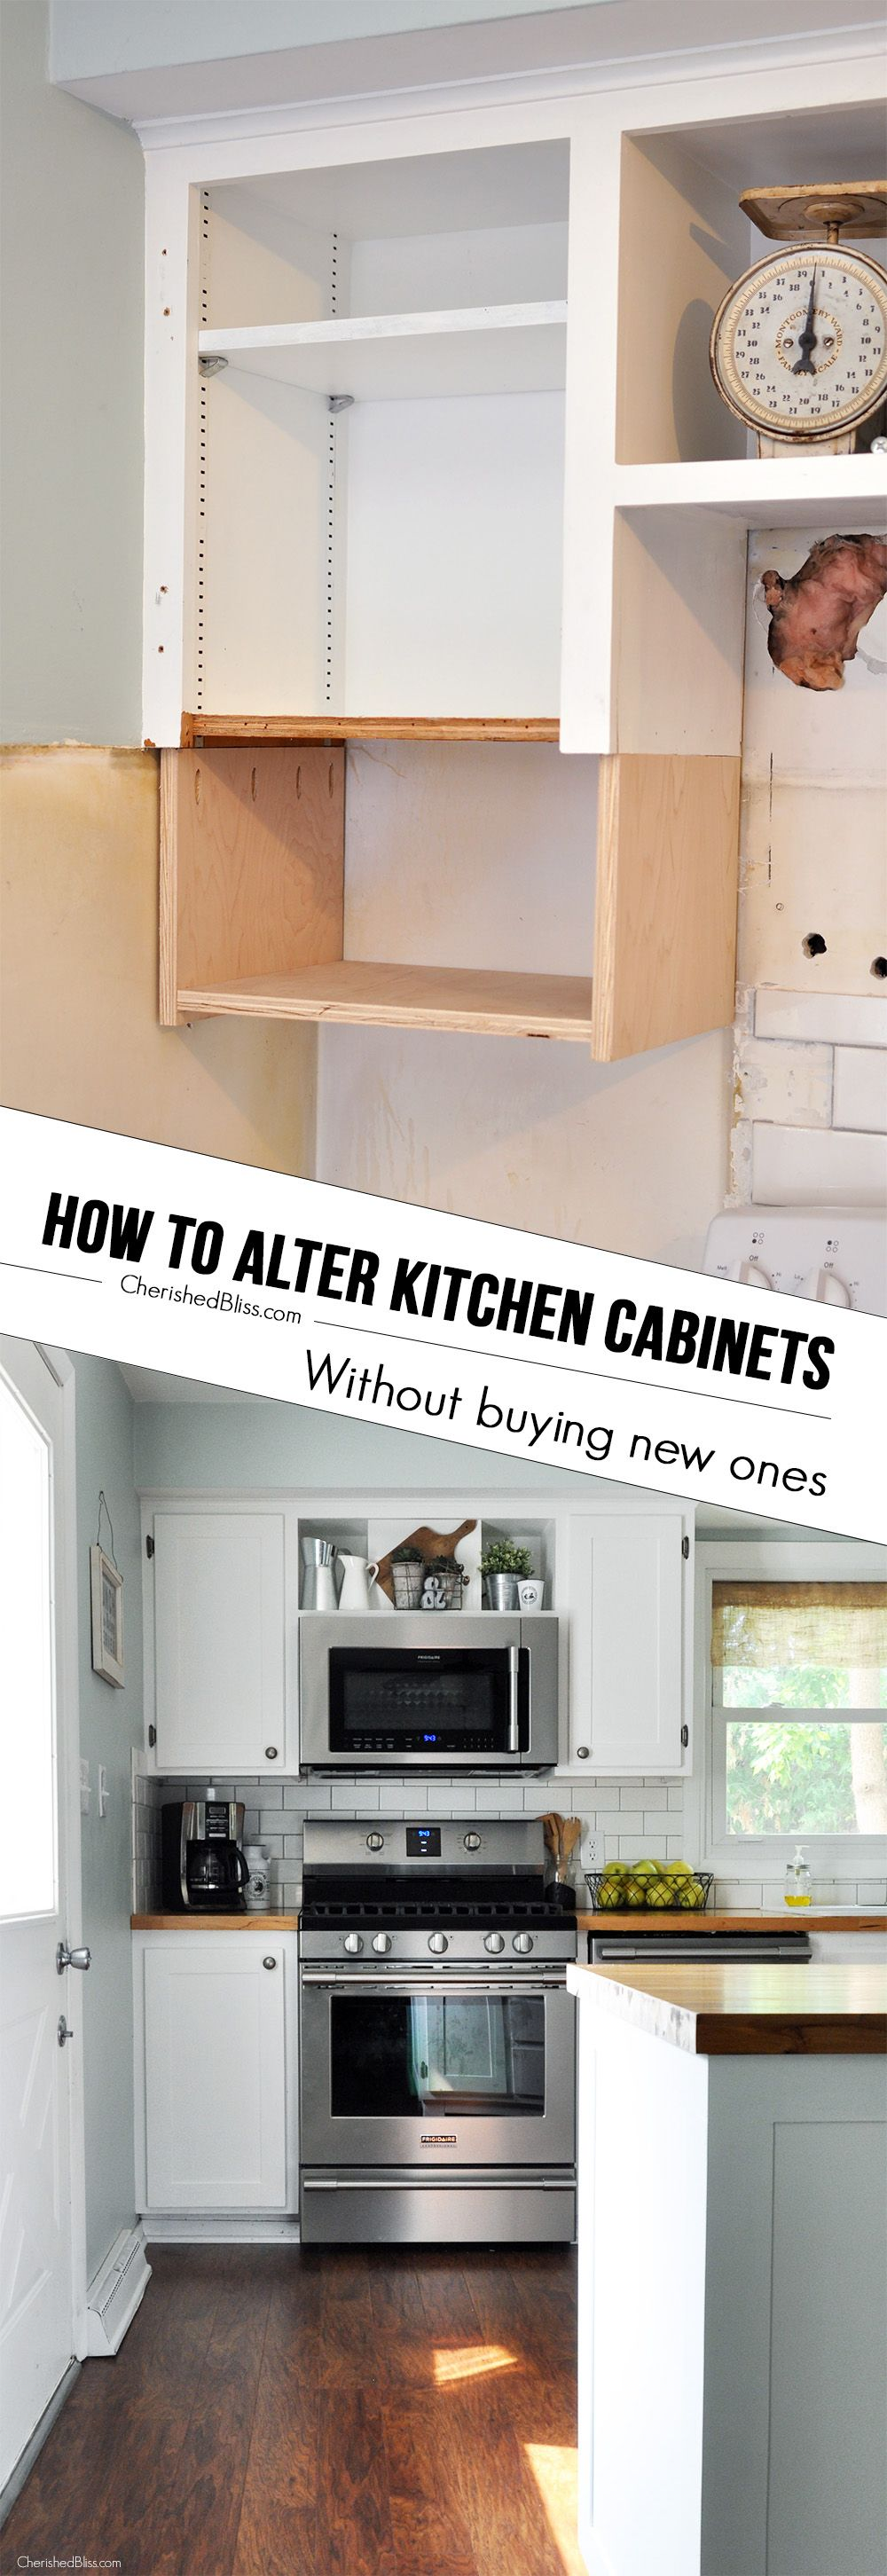 How To Save Money On Kitchen Cabinets